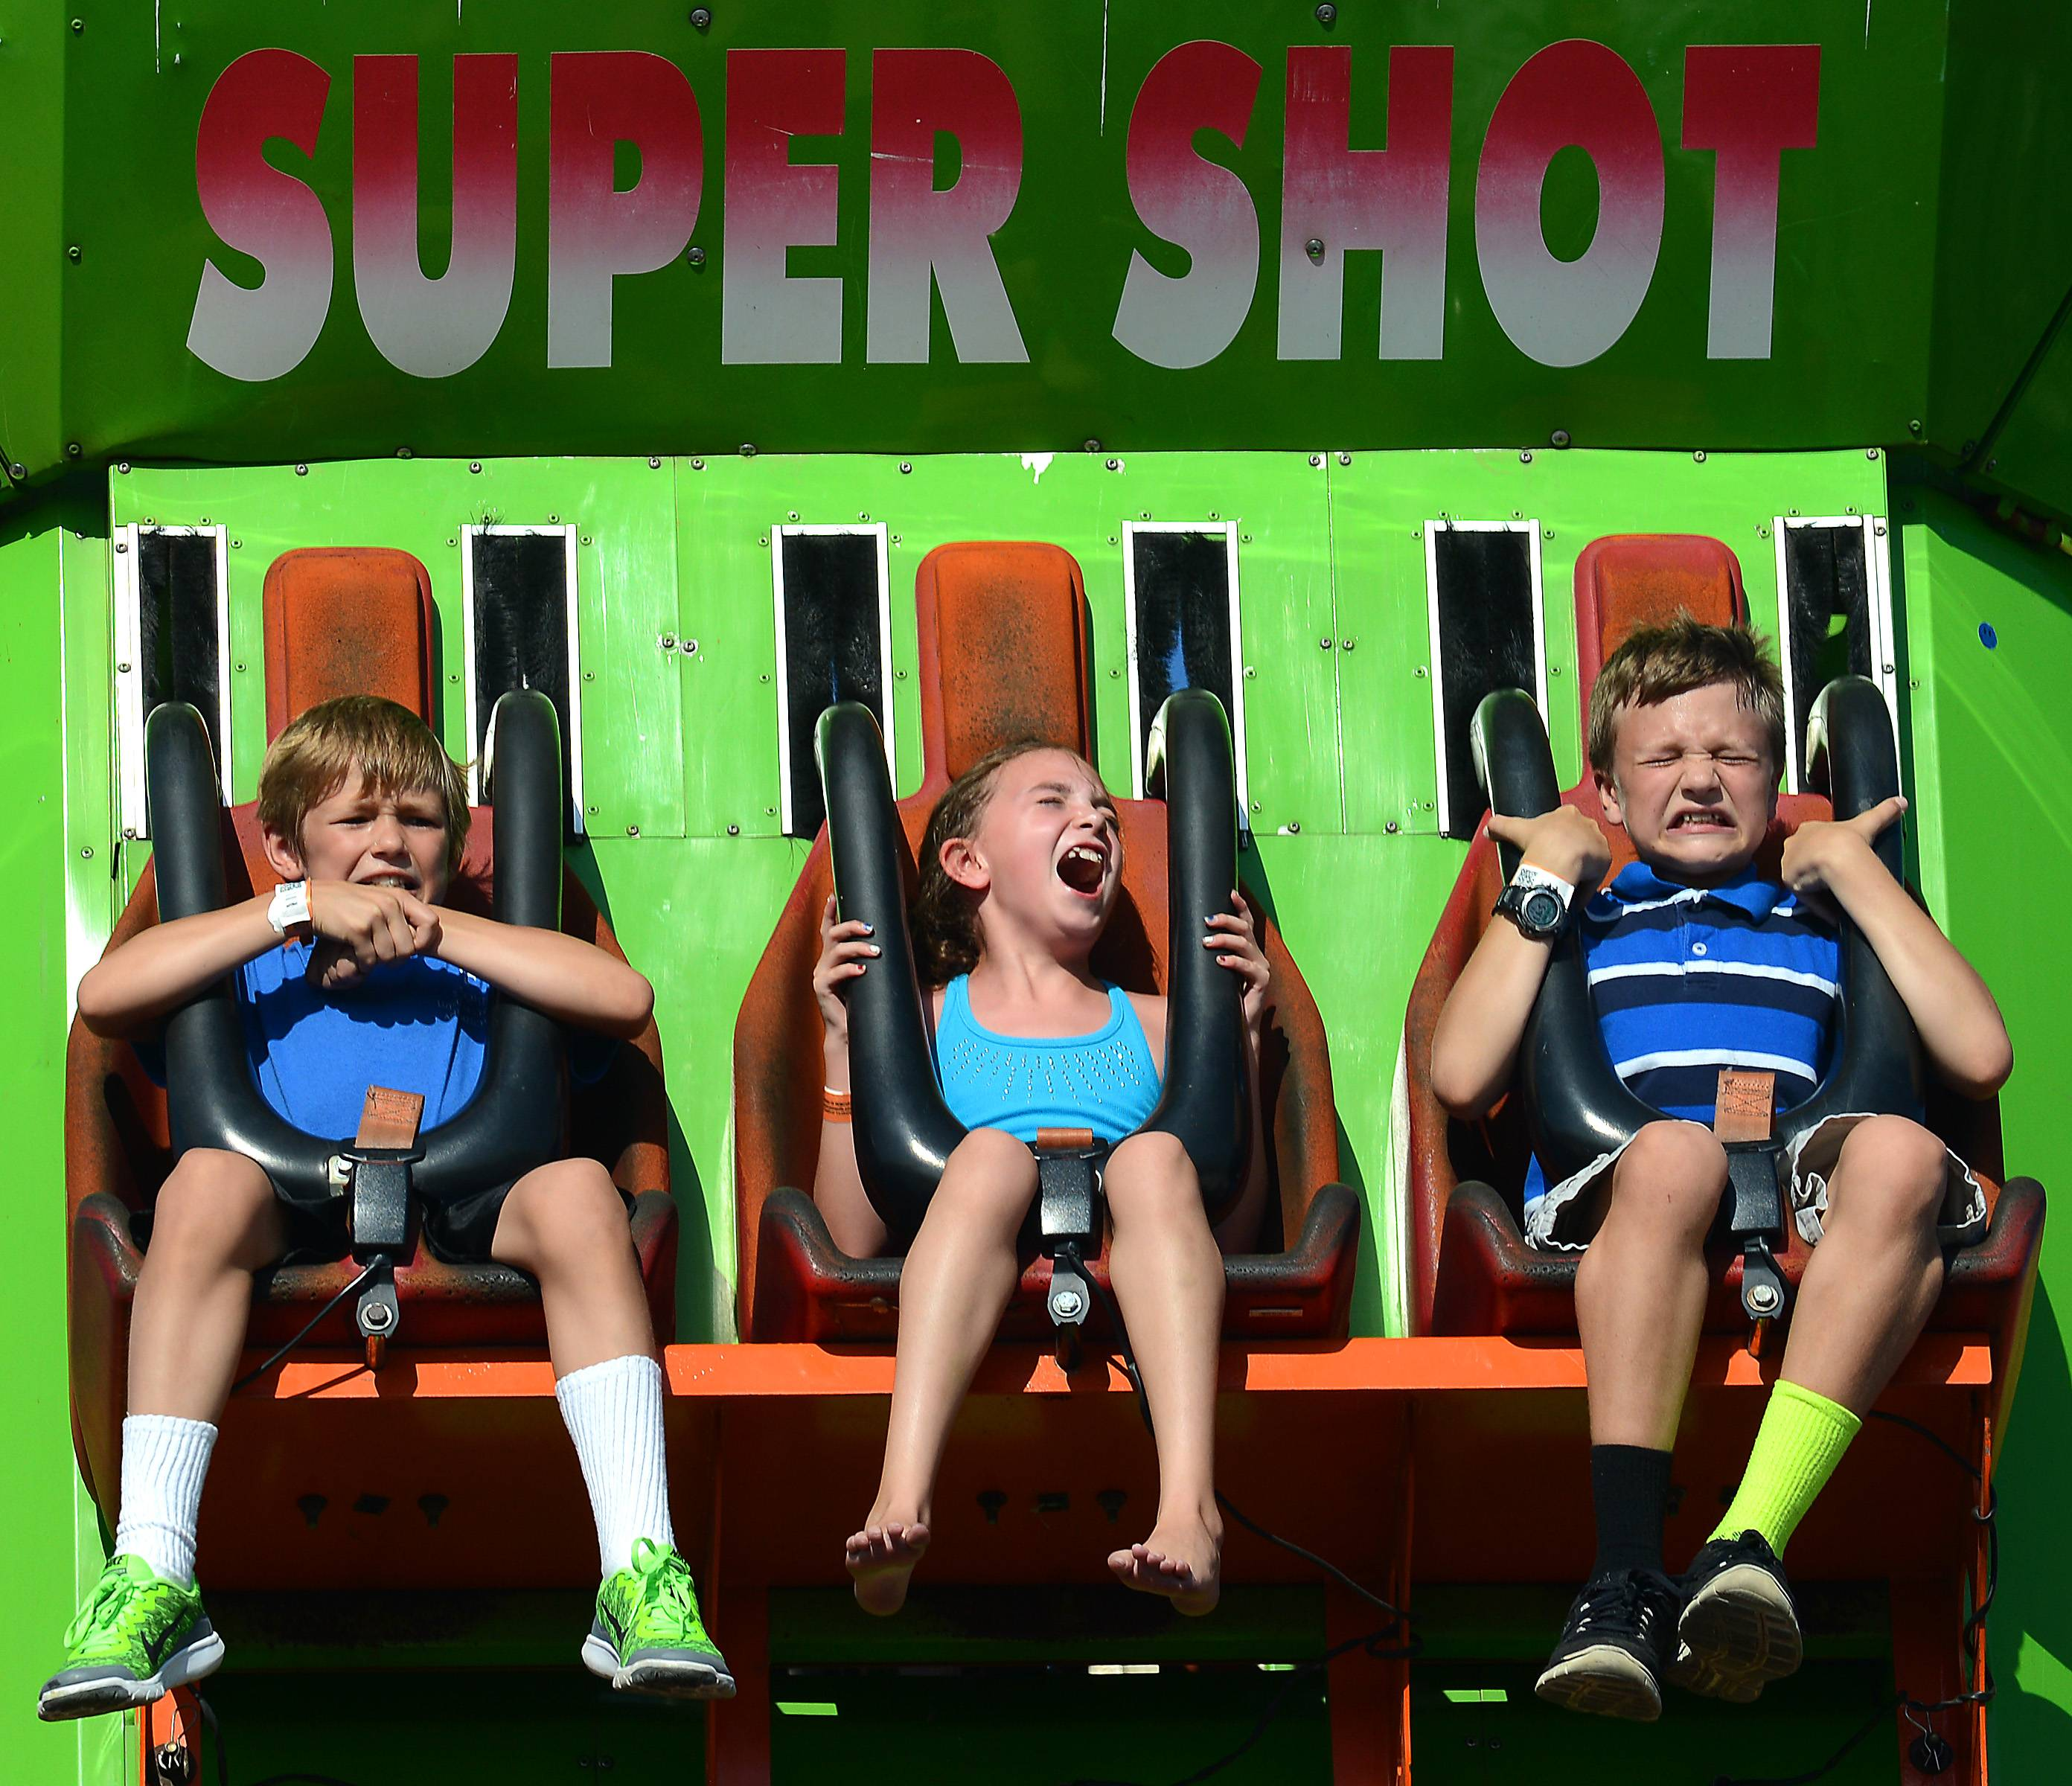 It was all tight grips and screams on the Super Shot for (from left) Nolan Scheel, 11, of Batavia, Brianna Siercks, 9, of St. Charles and Ben Feuerborn, 12, of Batavia during opening day of last year's Kane County Fair in St. Charles.